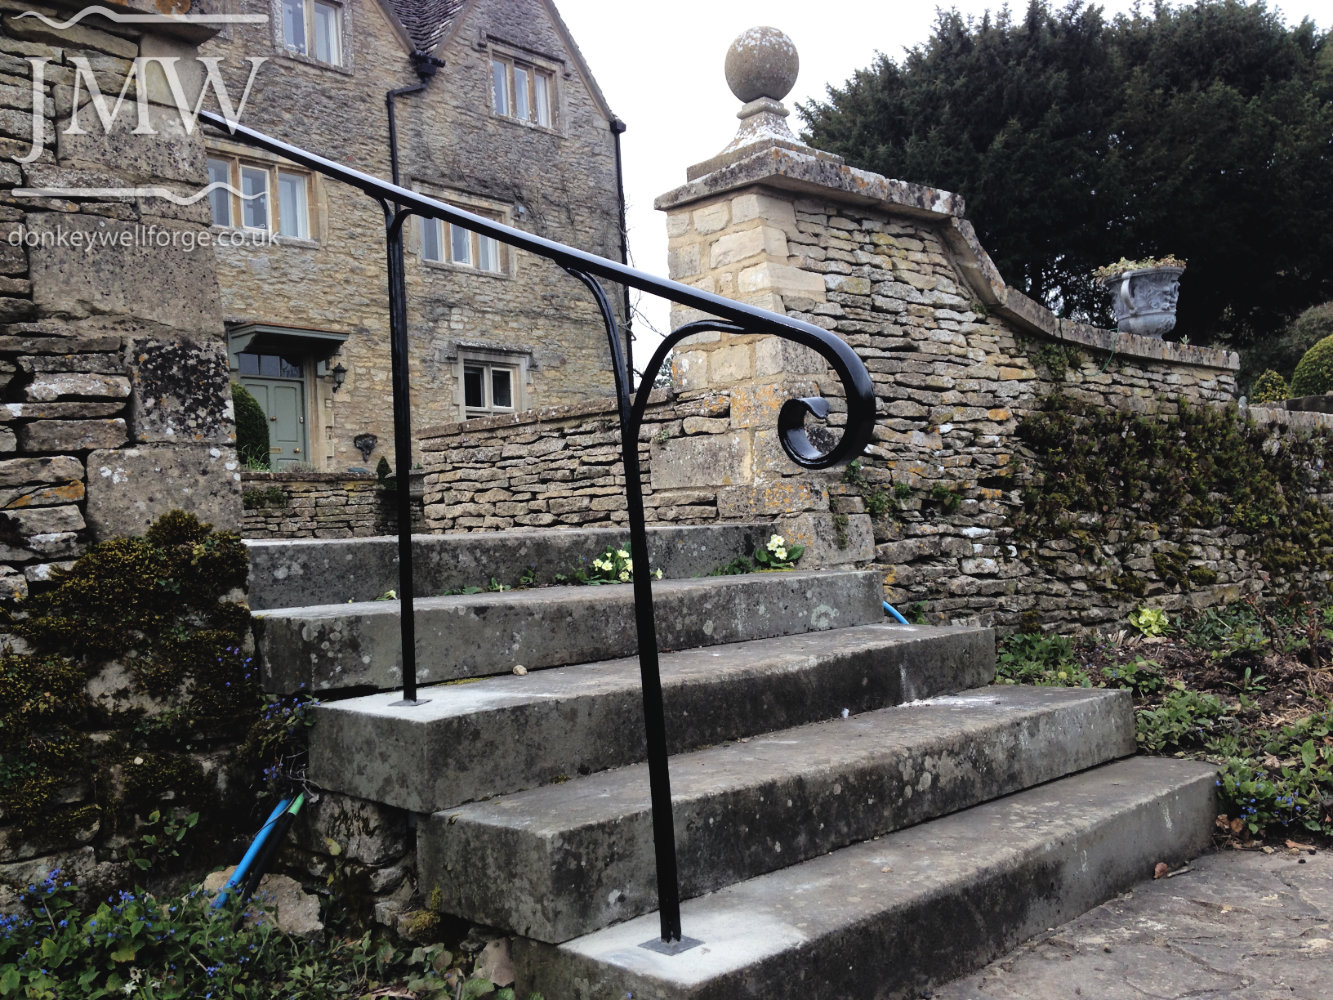 bespoke-handrail-iron-blacksmith-cotswolds-donkeywell-forge